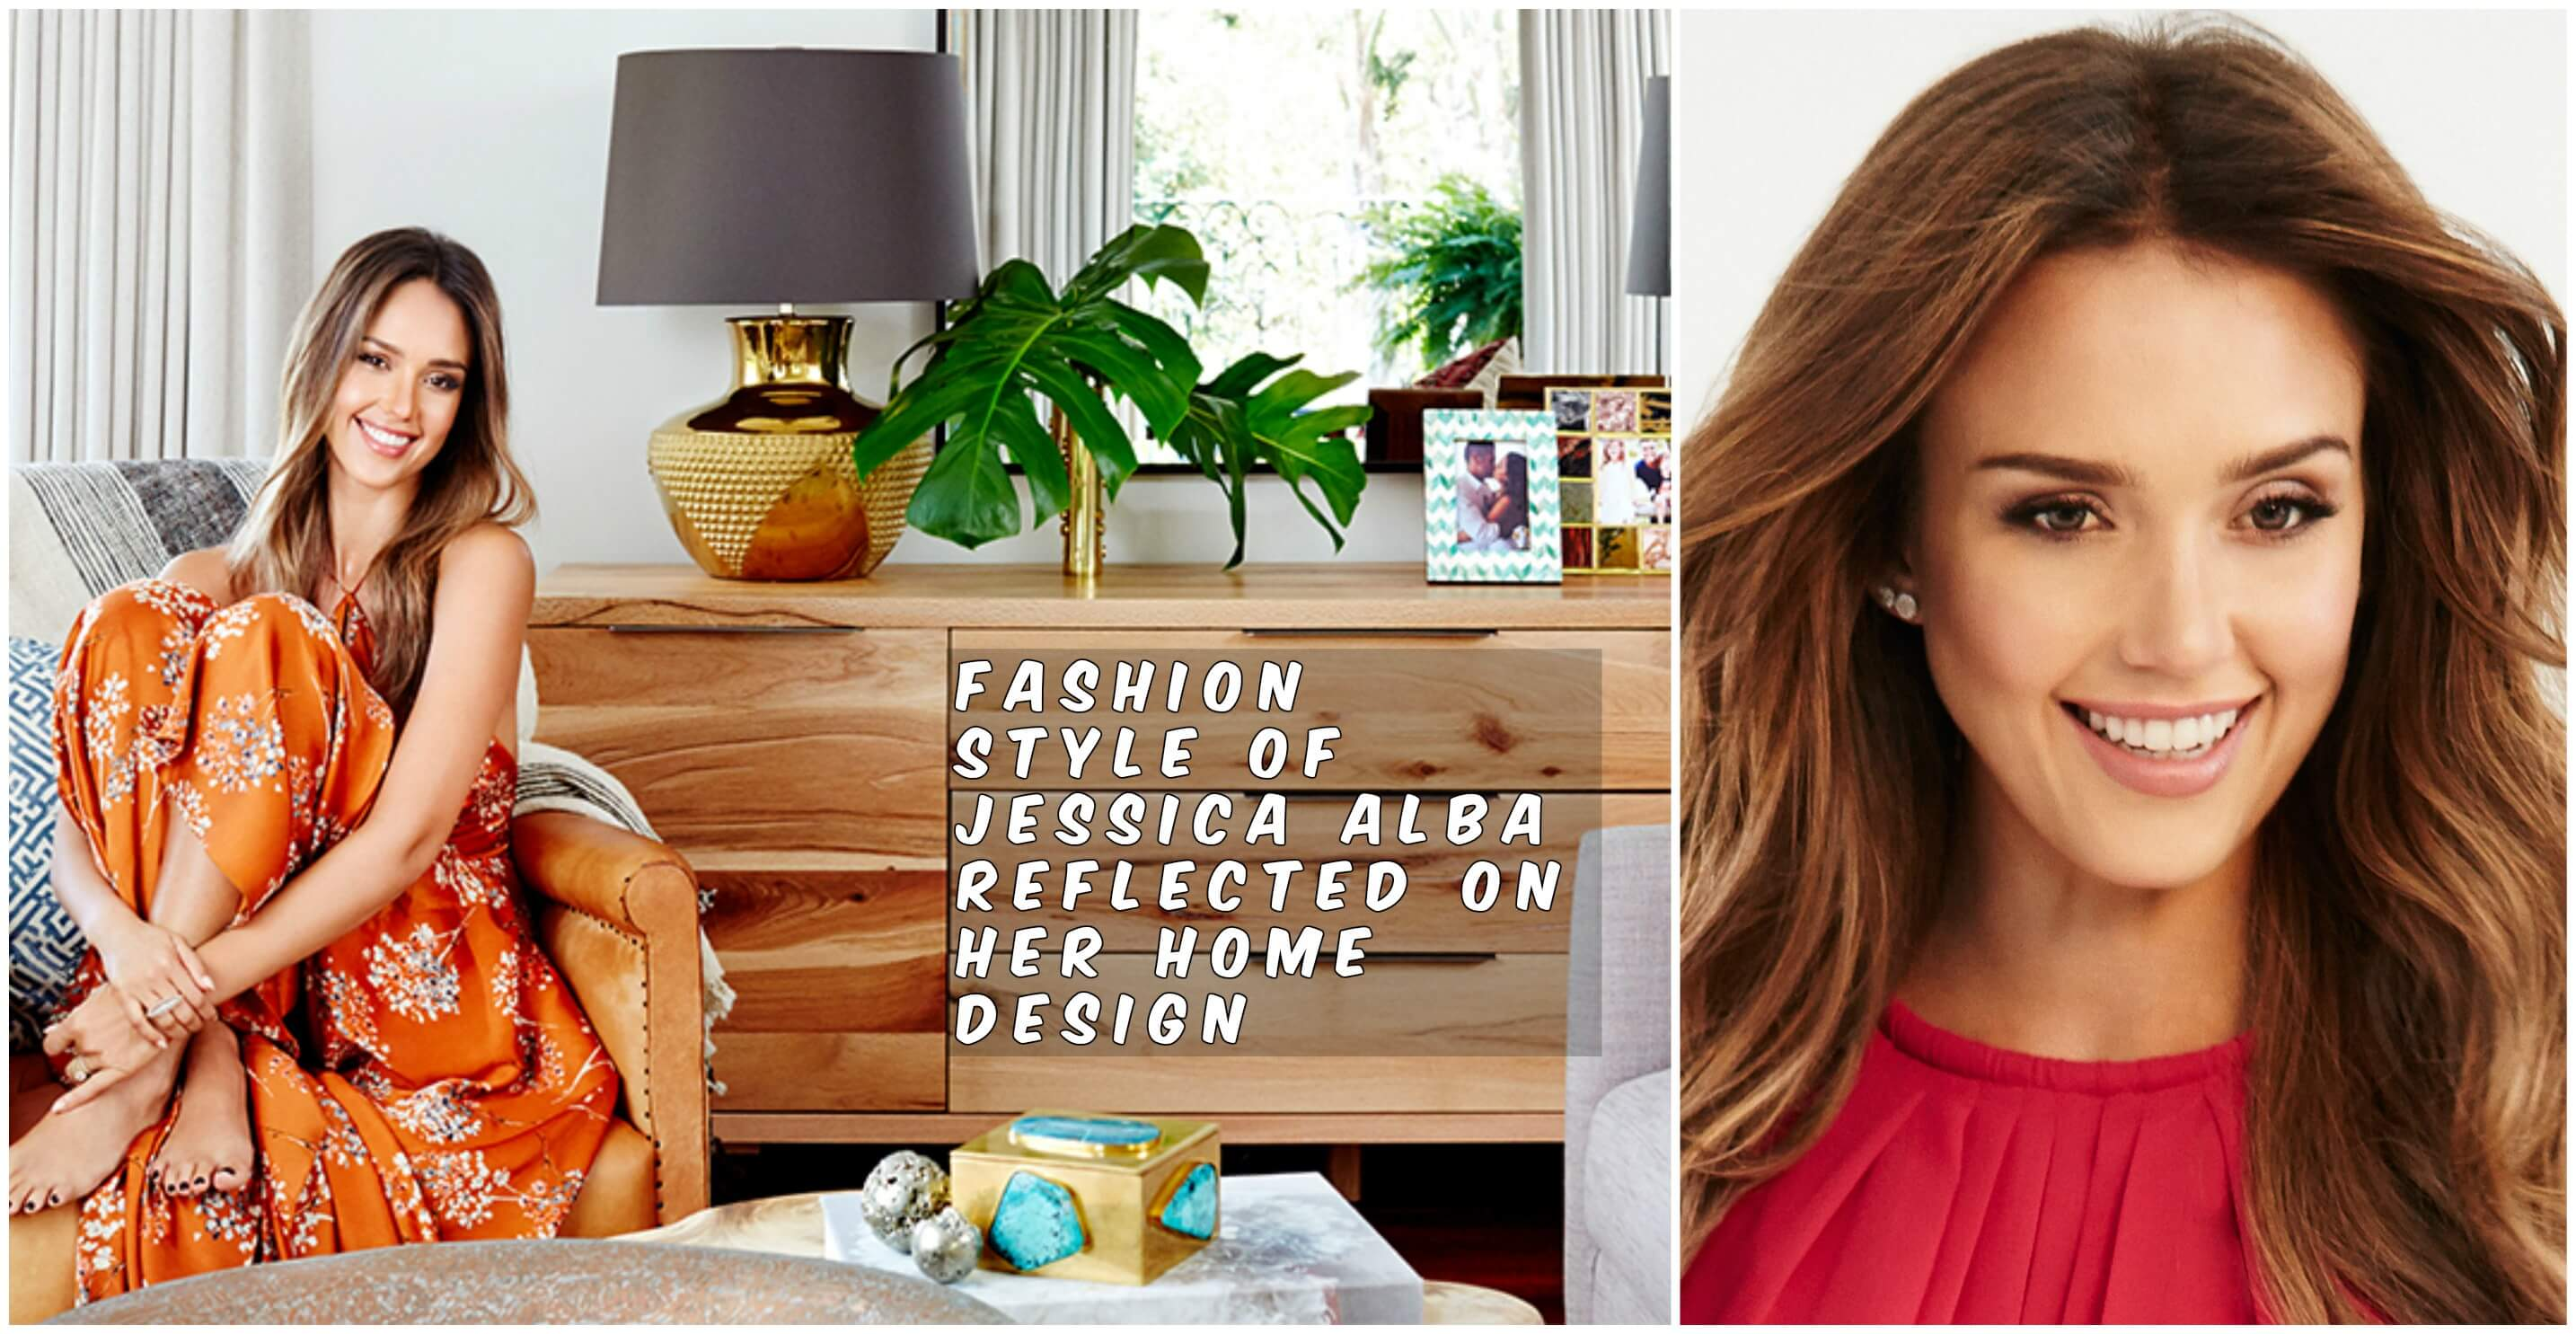 Fashion Style of Jessica Alba Reflected on Her Home Design